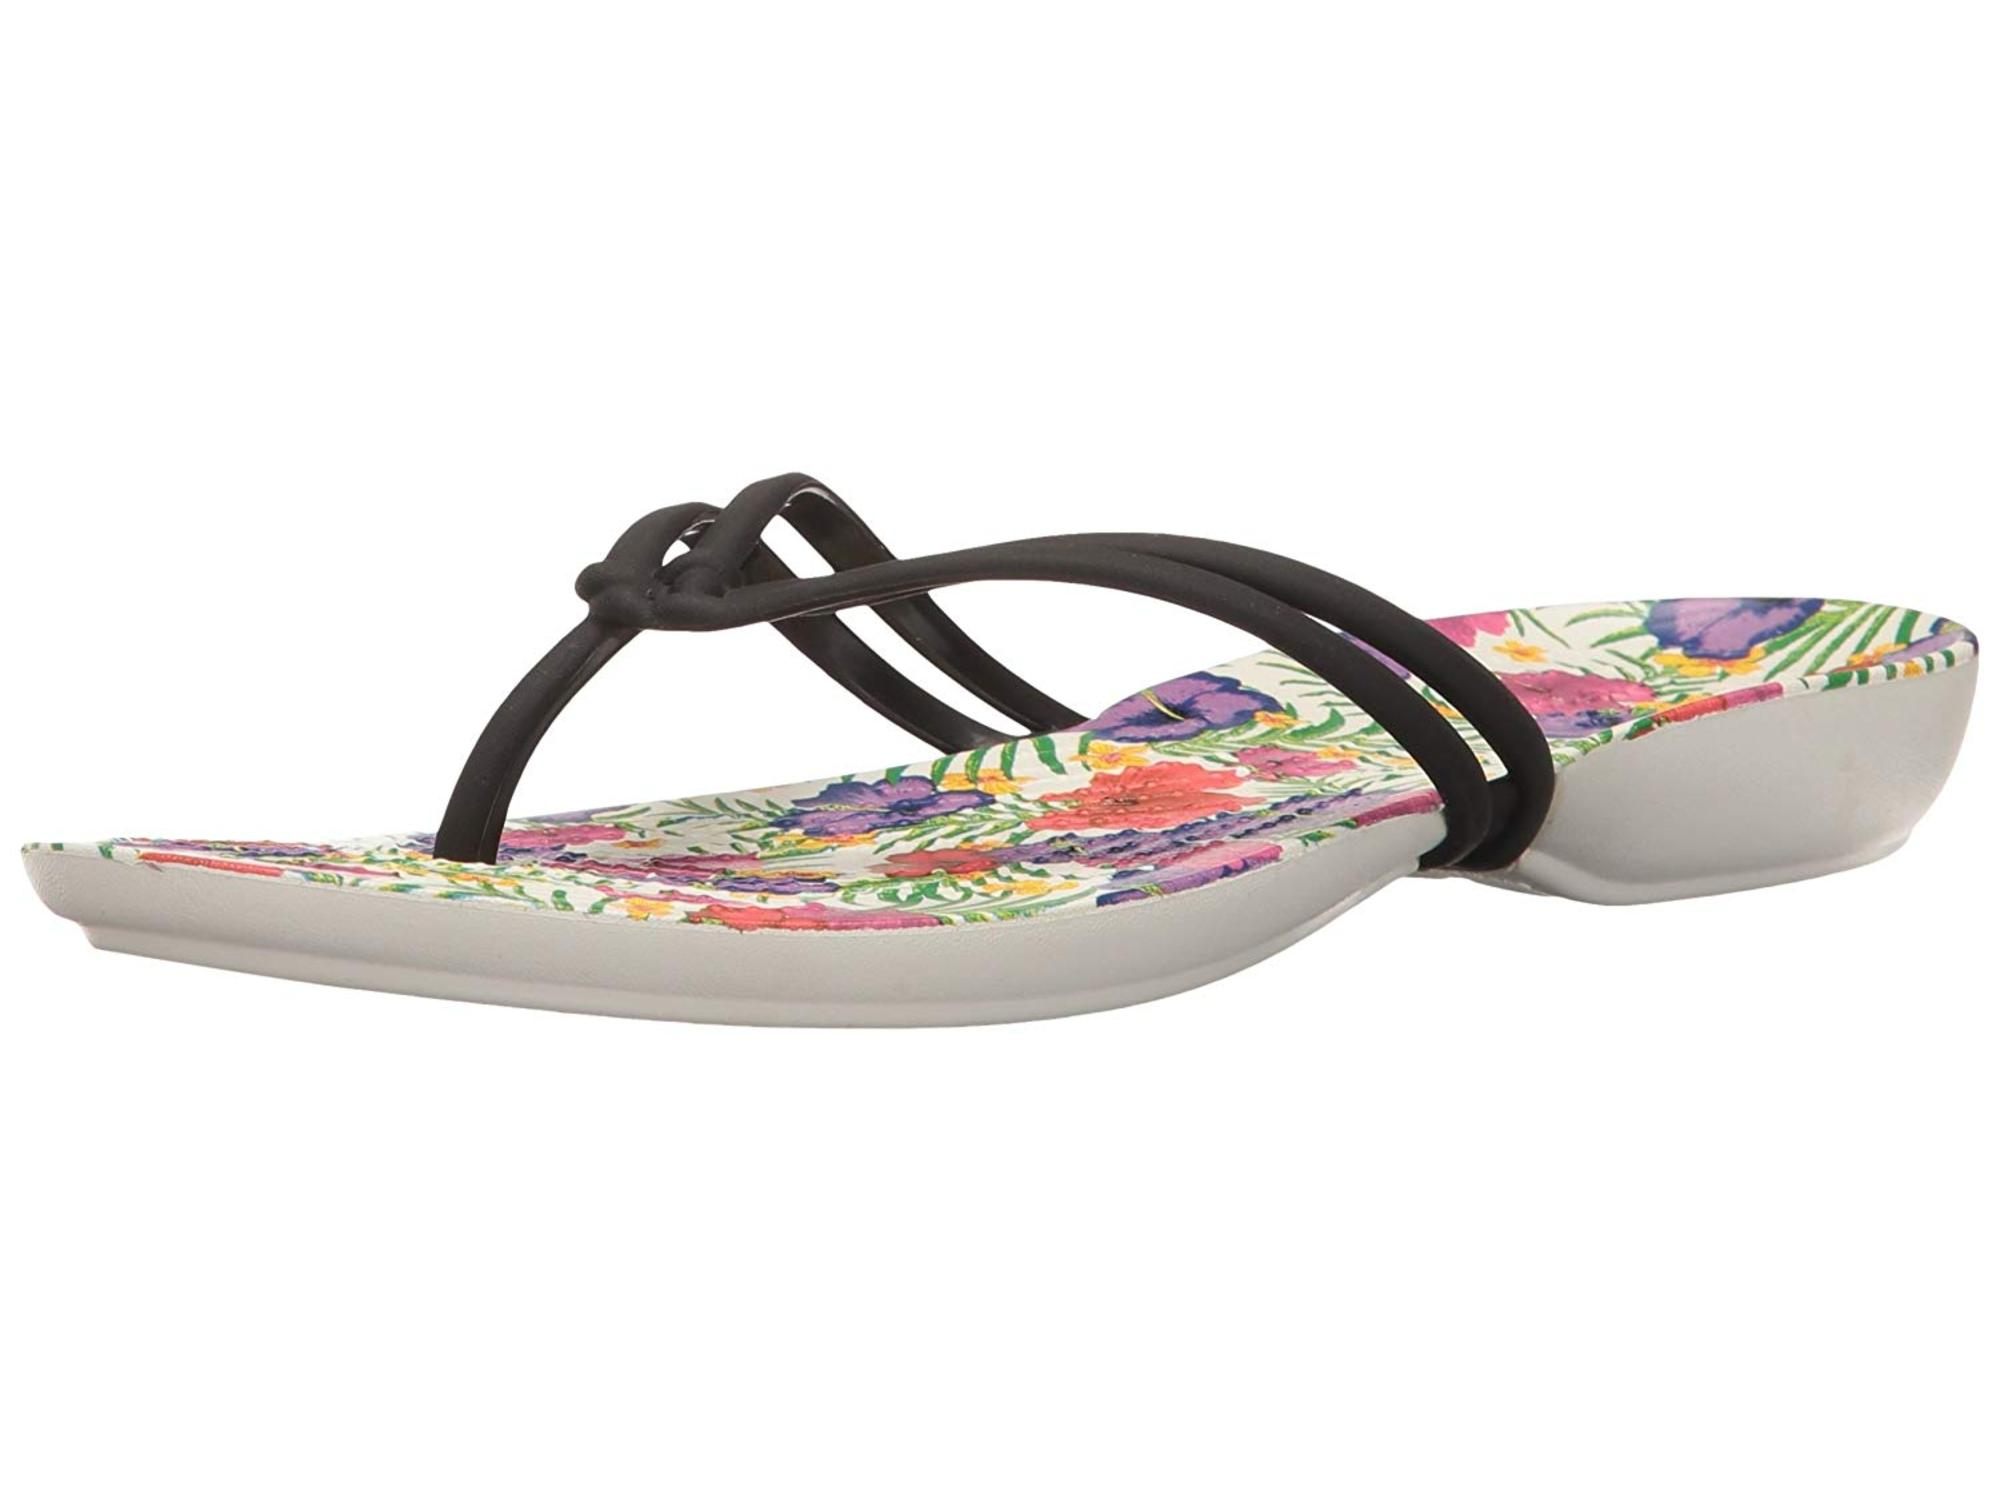 8a799b88085a9 Crocs Women s Isabella Graphic Flip